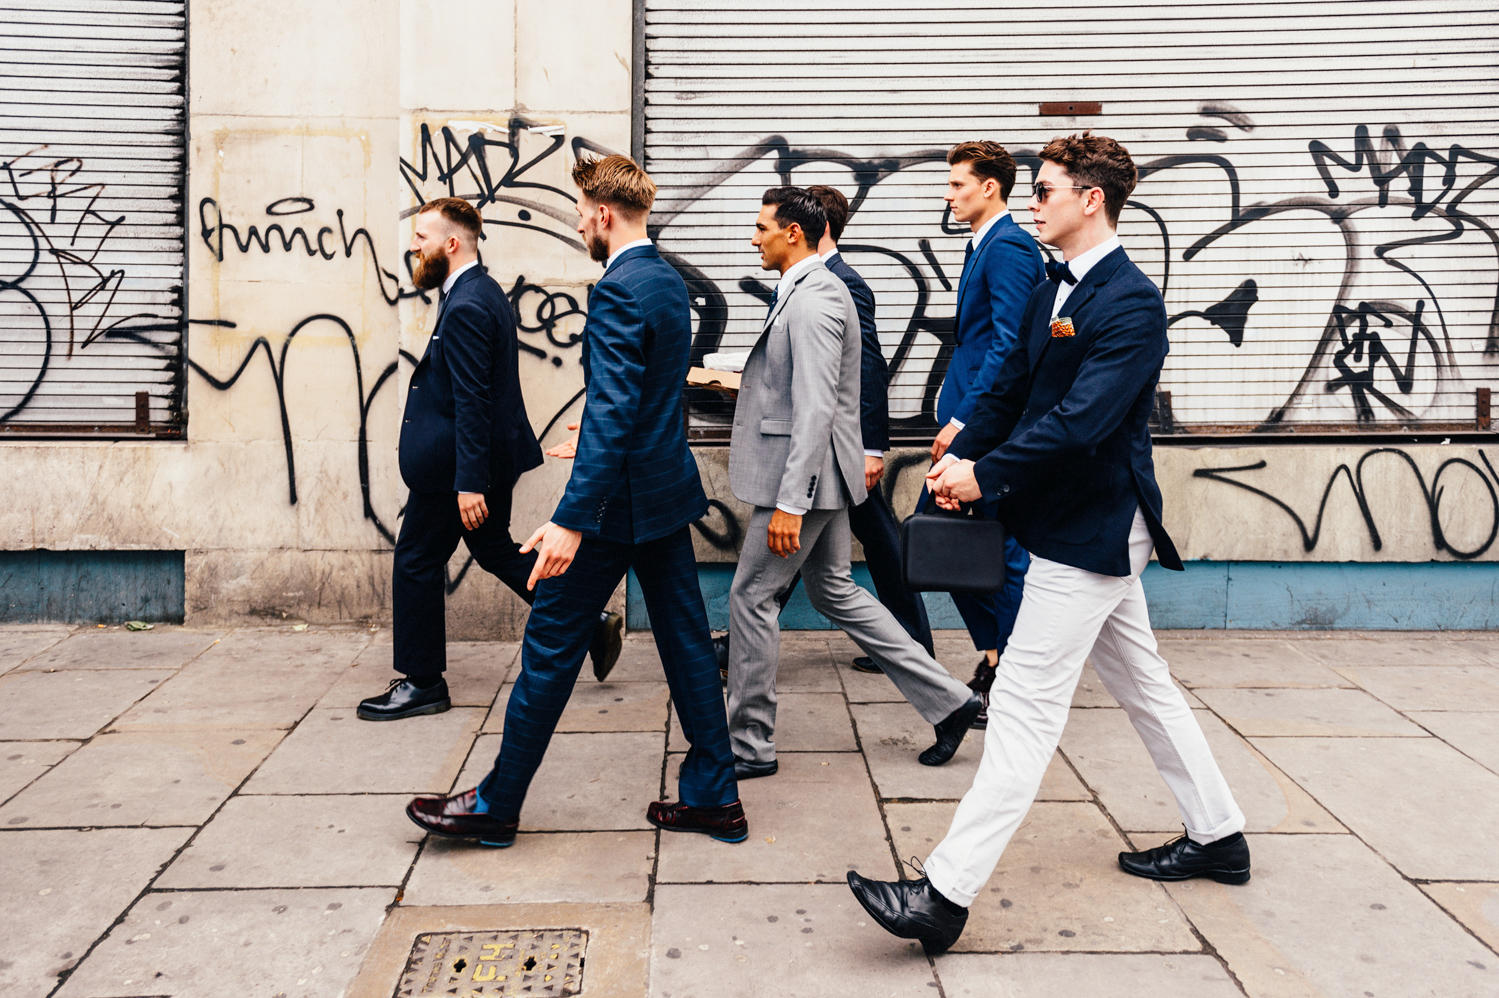 grooms men co-ordinated in blue